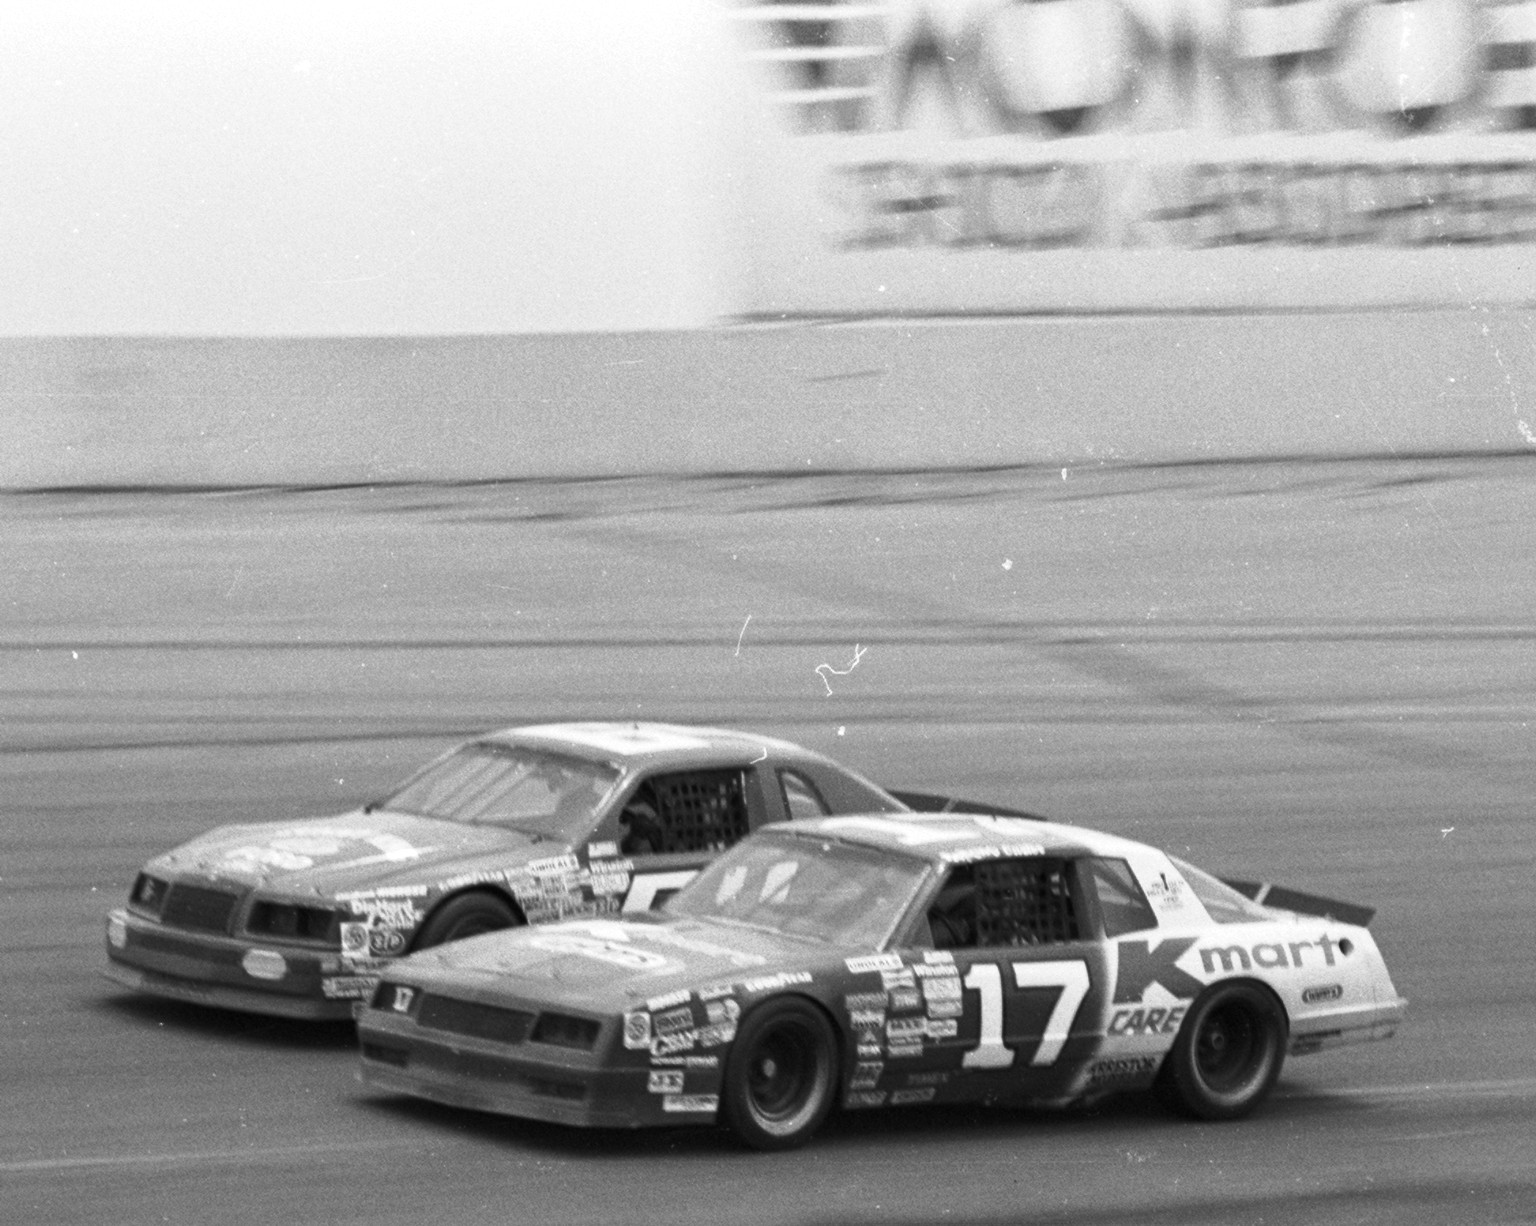 Pancho Carter drives the No. 17 K-Mart/Wynn's Oil Chevrolet for Hamby Racing inside Eddie Bierschwale's No.64 Sunny King Ford-Honda Ford in the NASCAR Winston Cup Series Miller High Life 500 at Pocono Raceway, June 8, 1986